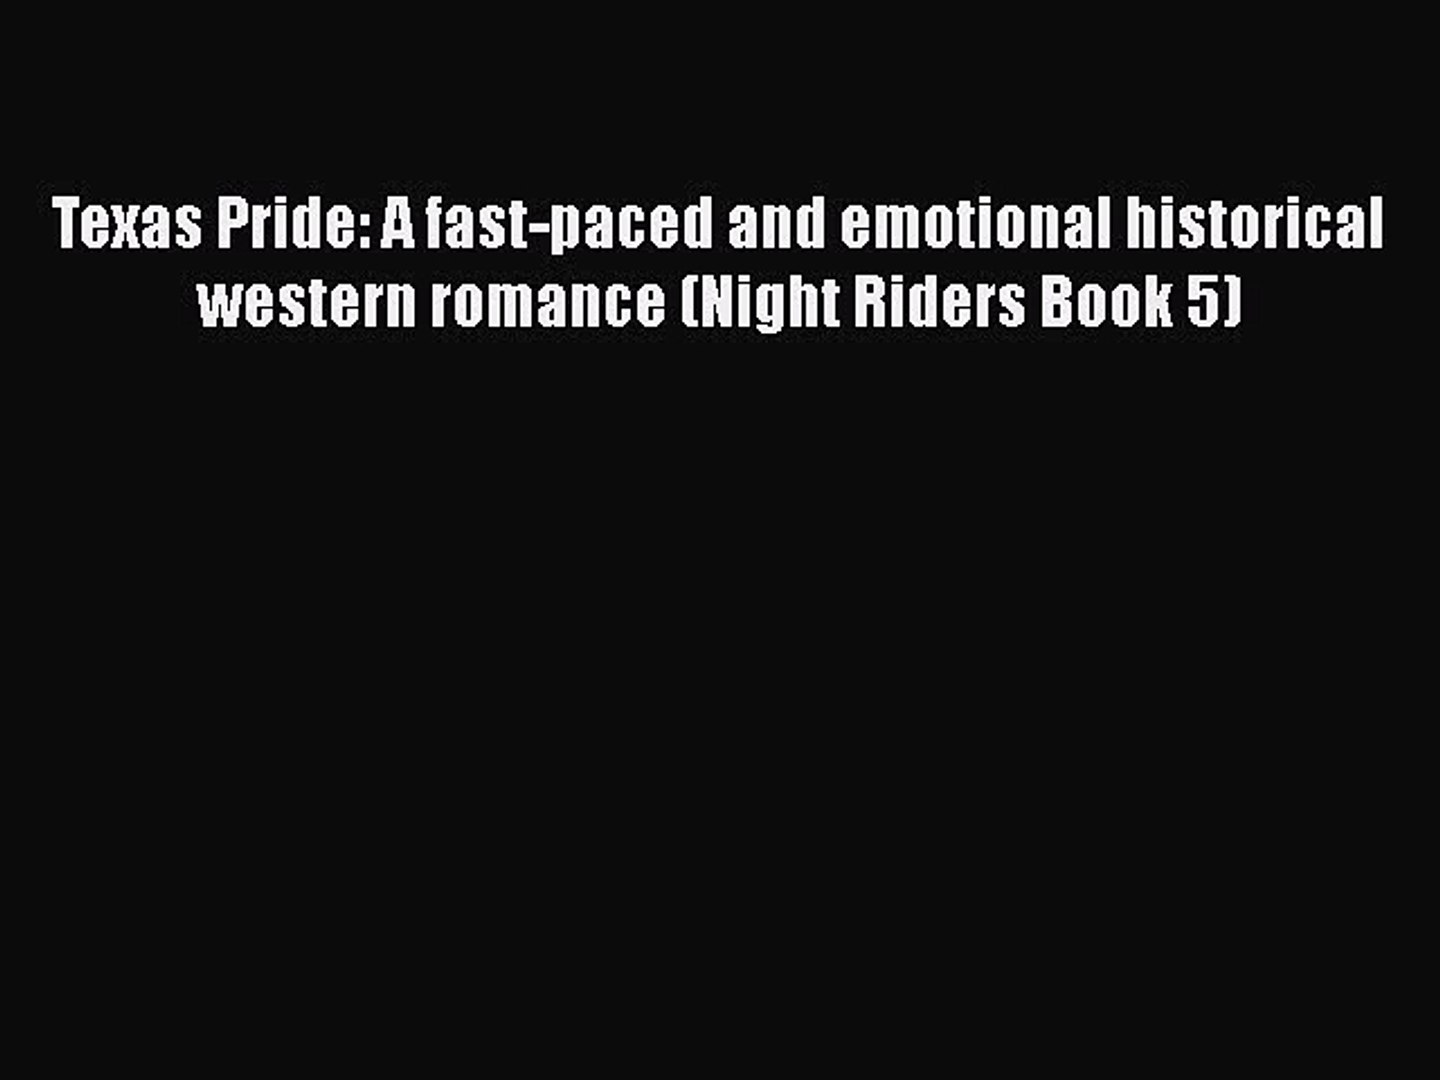 Download Texas Pride: A fast-paced and emotional historical western romance (Night Riders Book